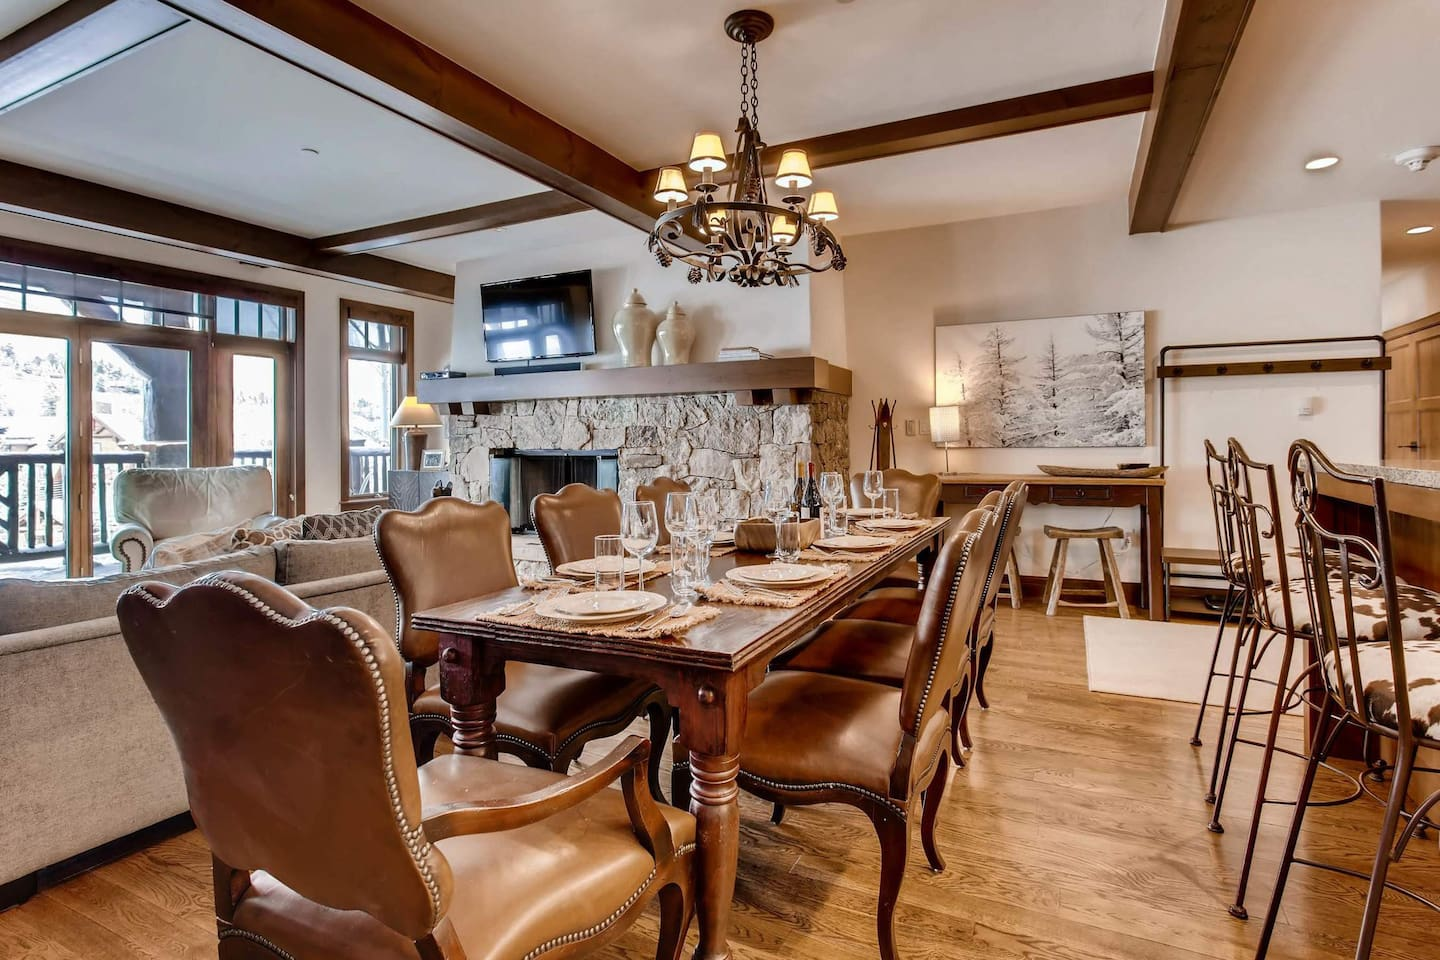 Between the elegant wood and leather chairs, grand dining table, and overhead chandelier, you can have a 5-star restaurant experience in your own home.